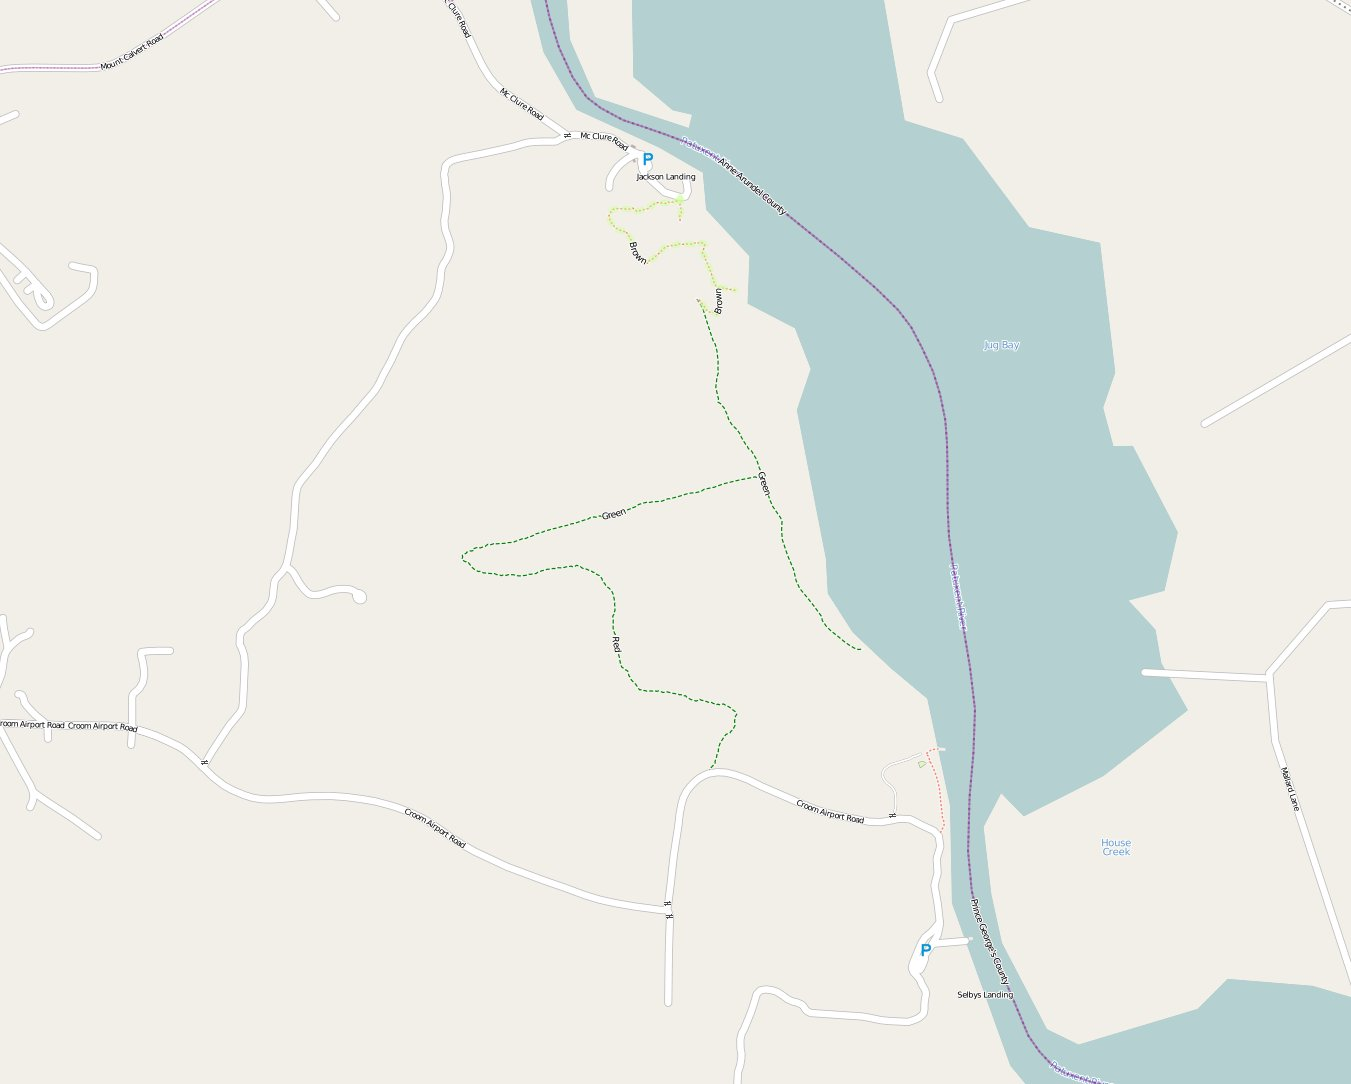 Incomplete map of Patuxent River Park